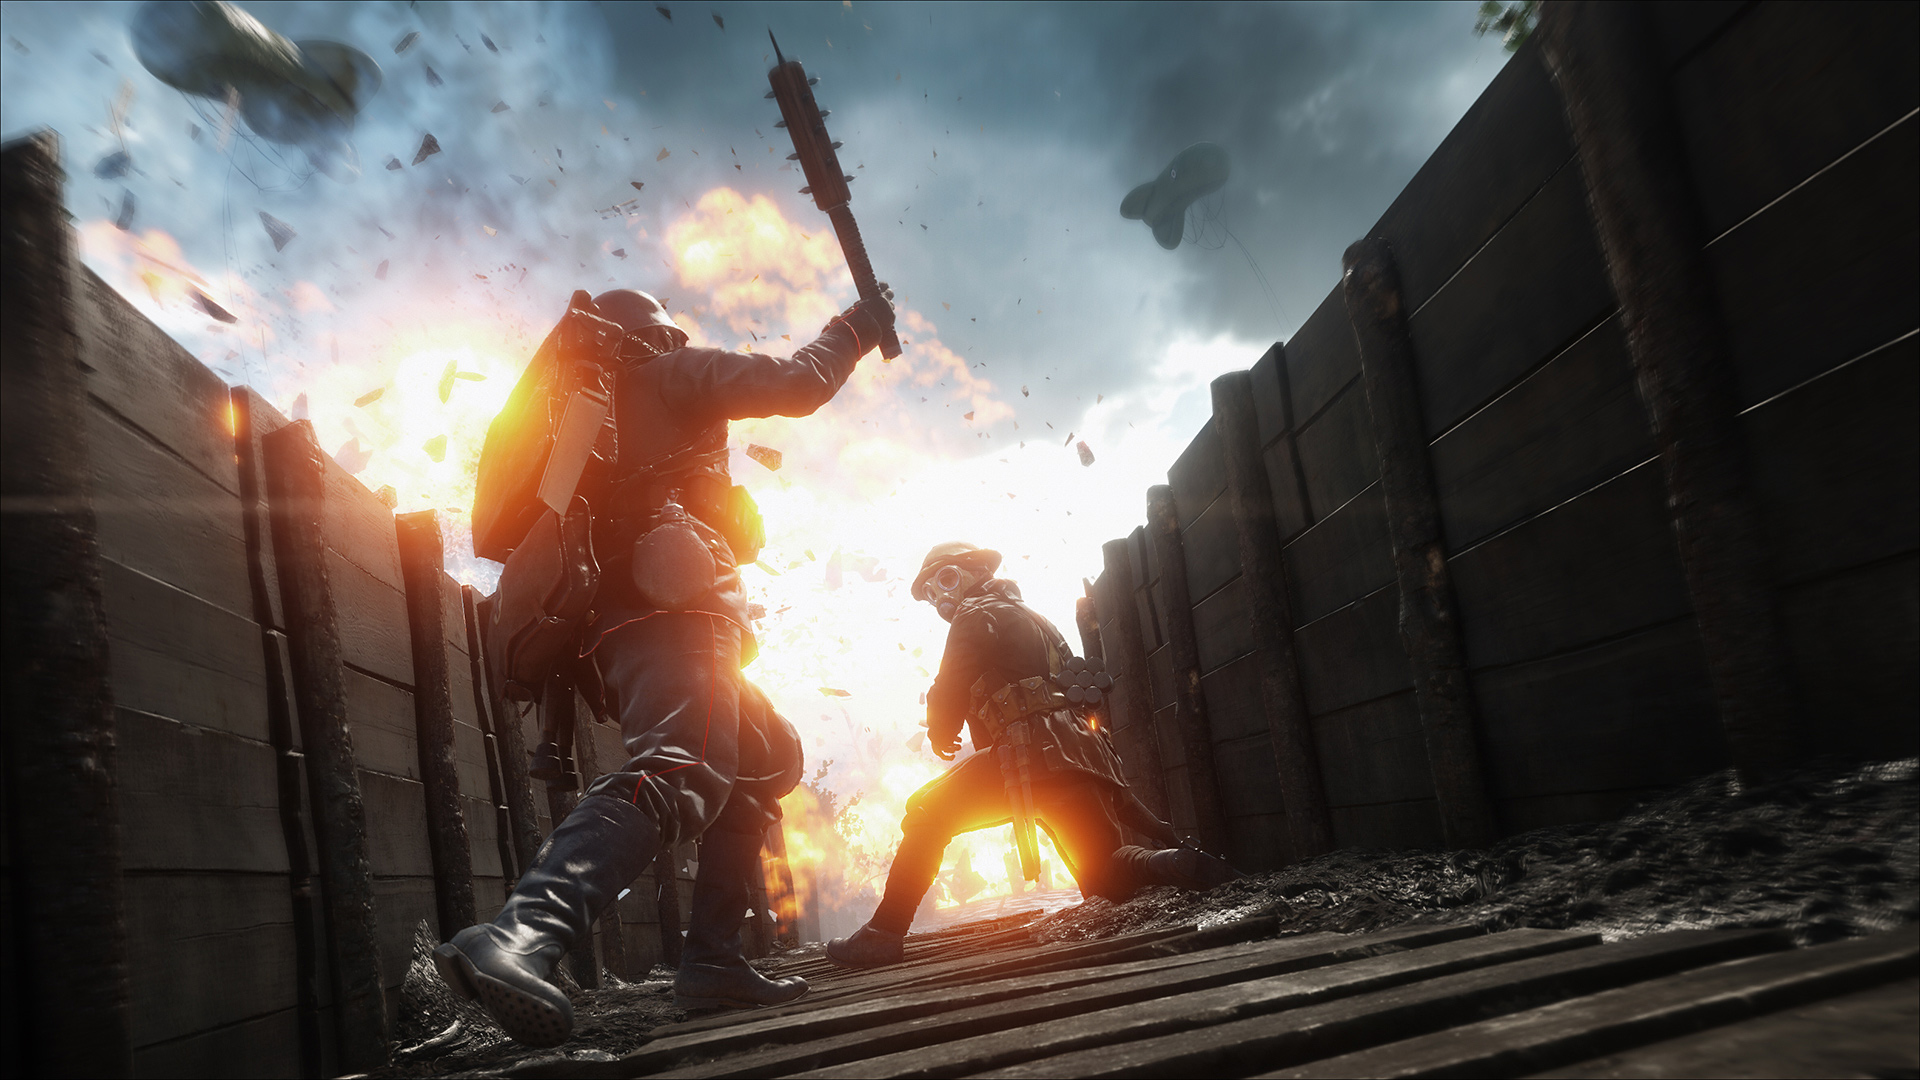 Fantastic Battlefield 1 Wallpapers for PC, Mobile, and Tablets BV72